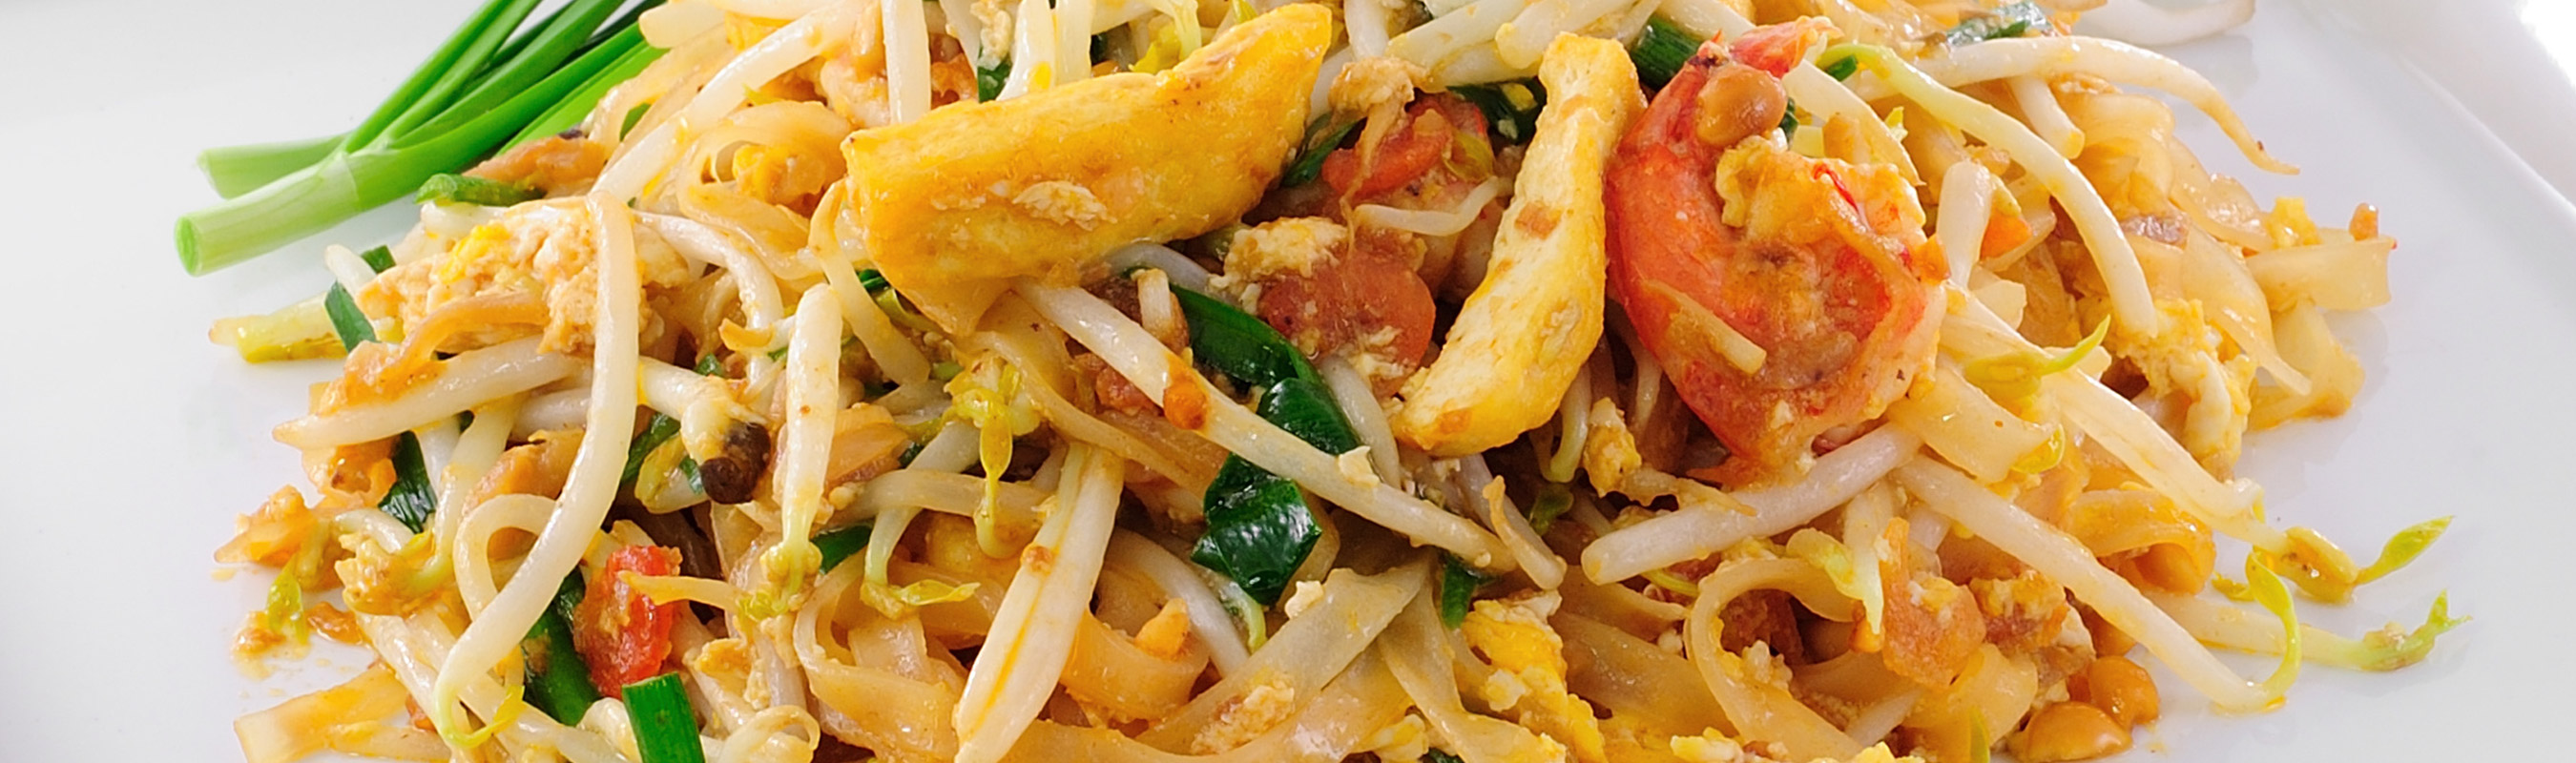 Authentic Thai Food Takeaway